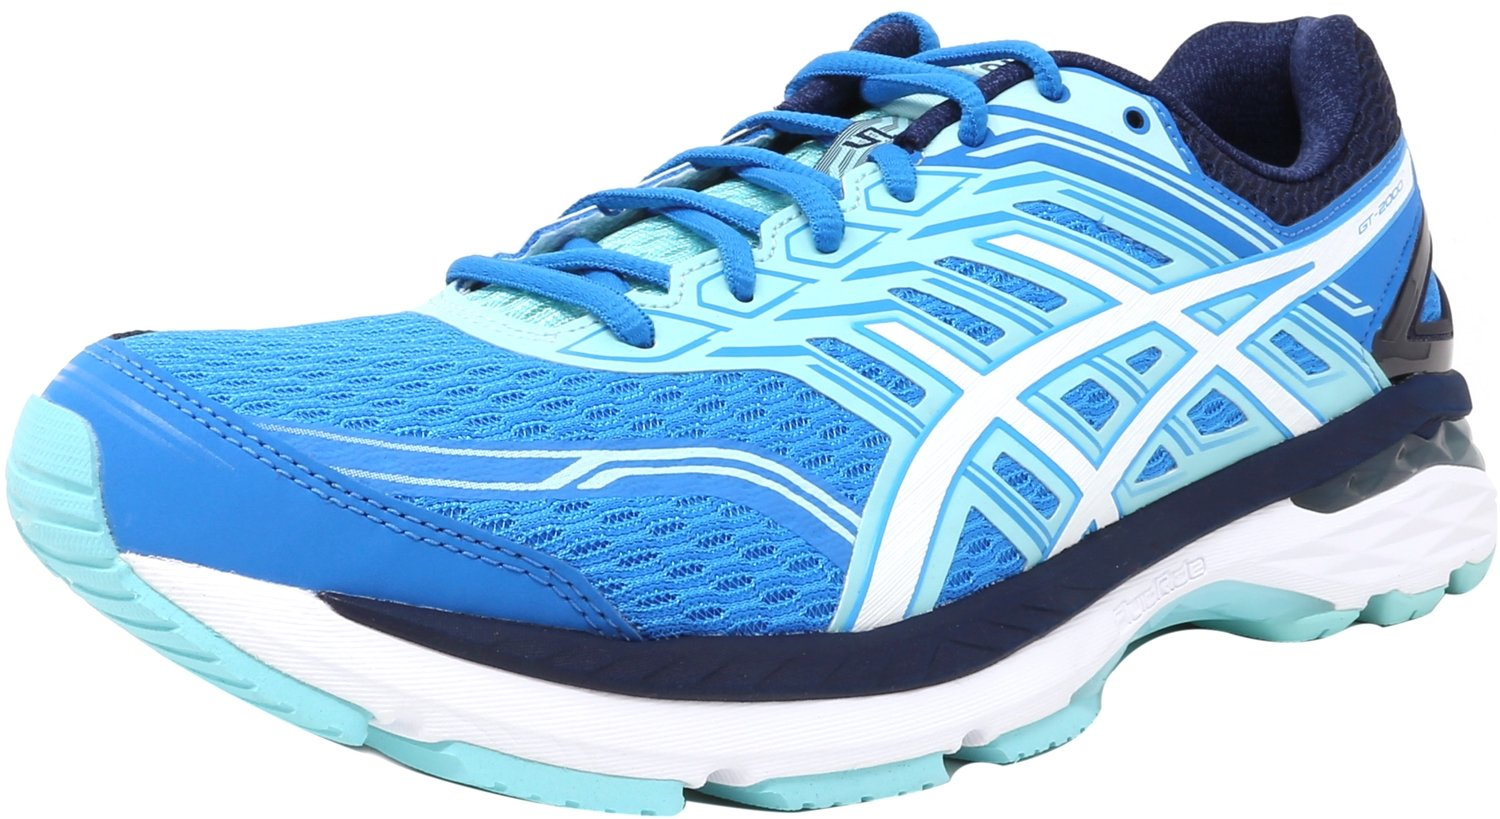 ASICS Women's GT-2000 5 Running Shoe, Diva Blue/White/Aqua Splash, 11.5 M US